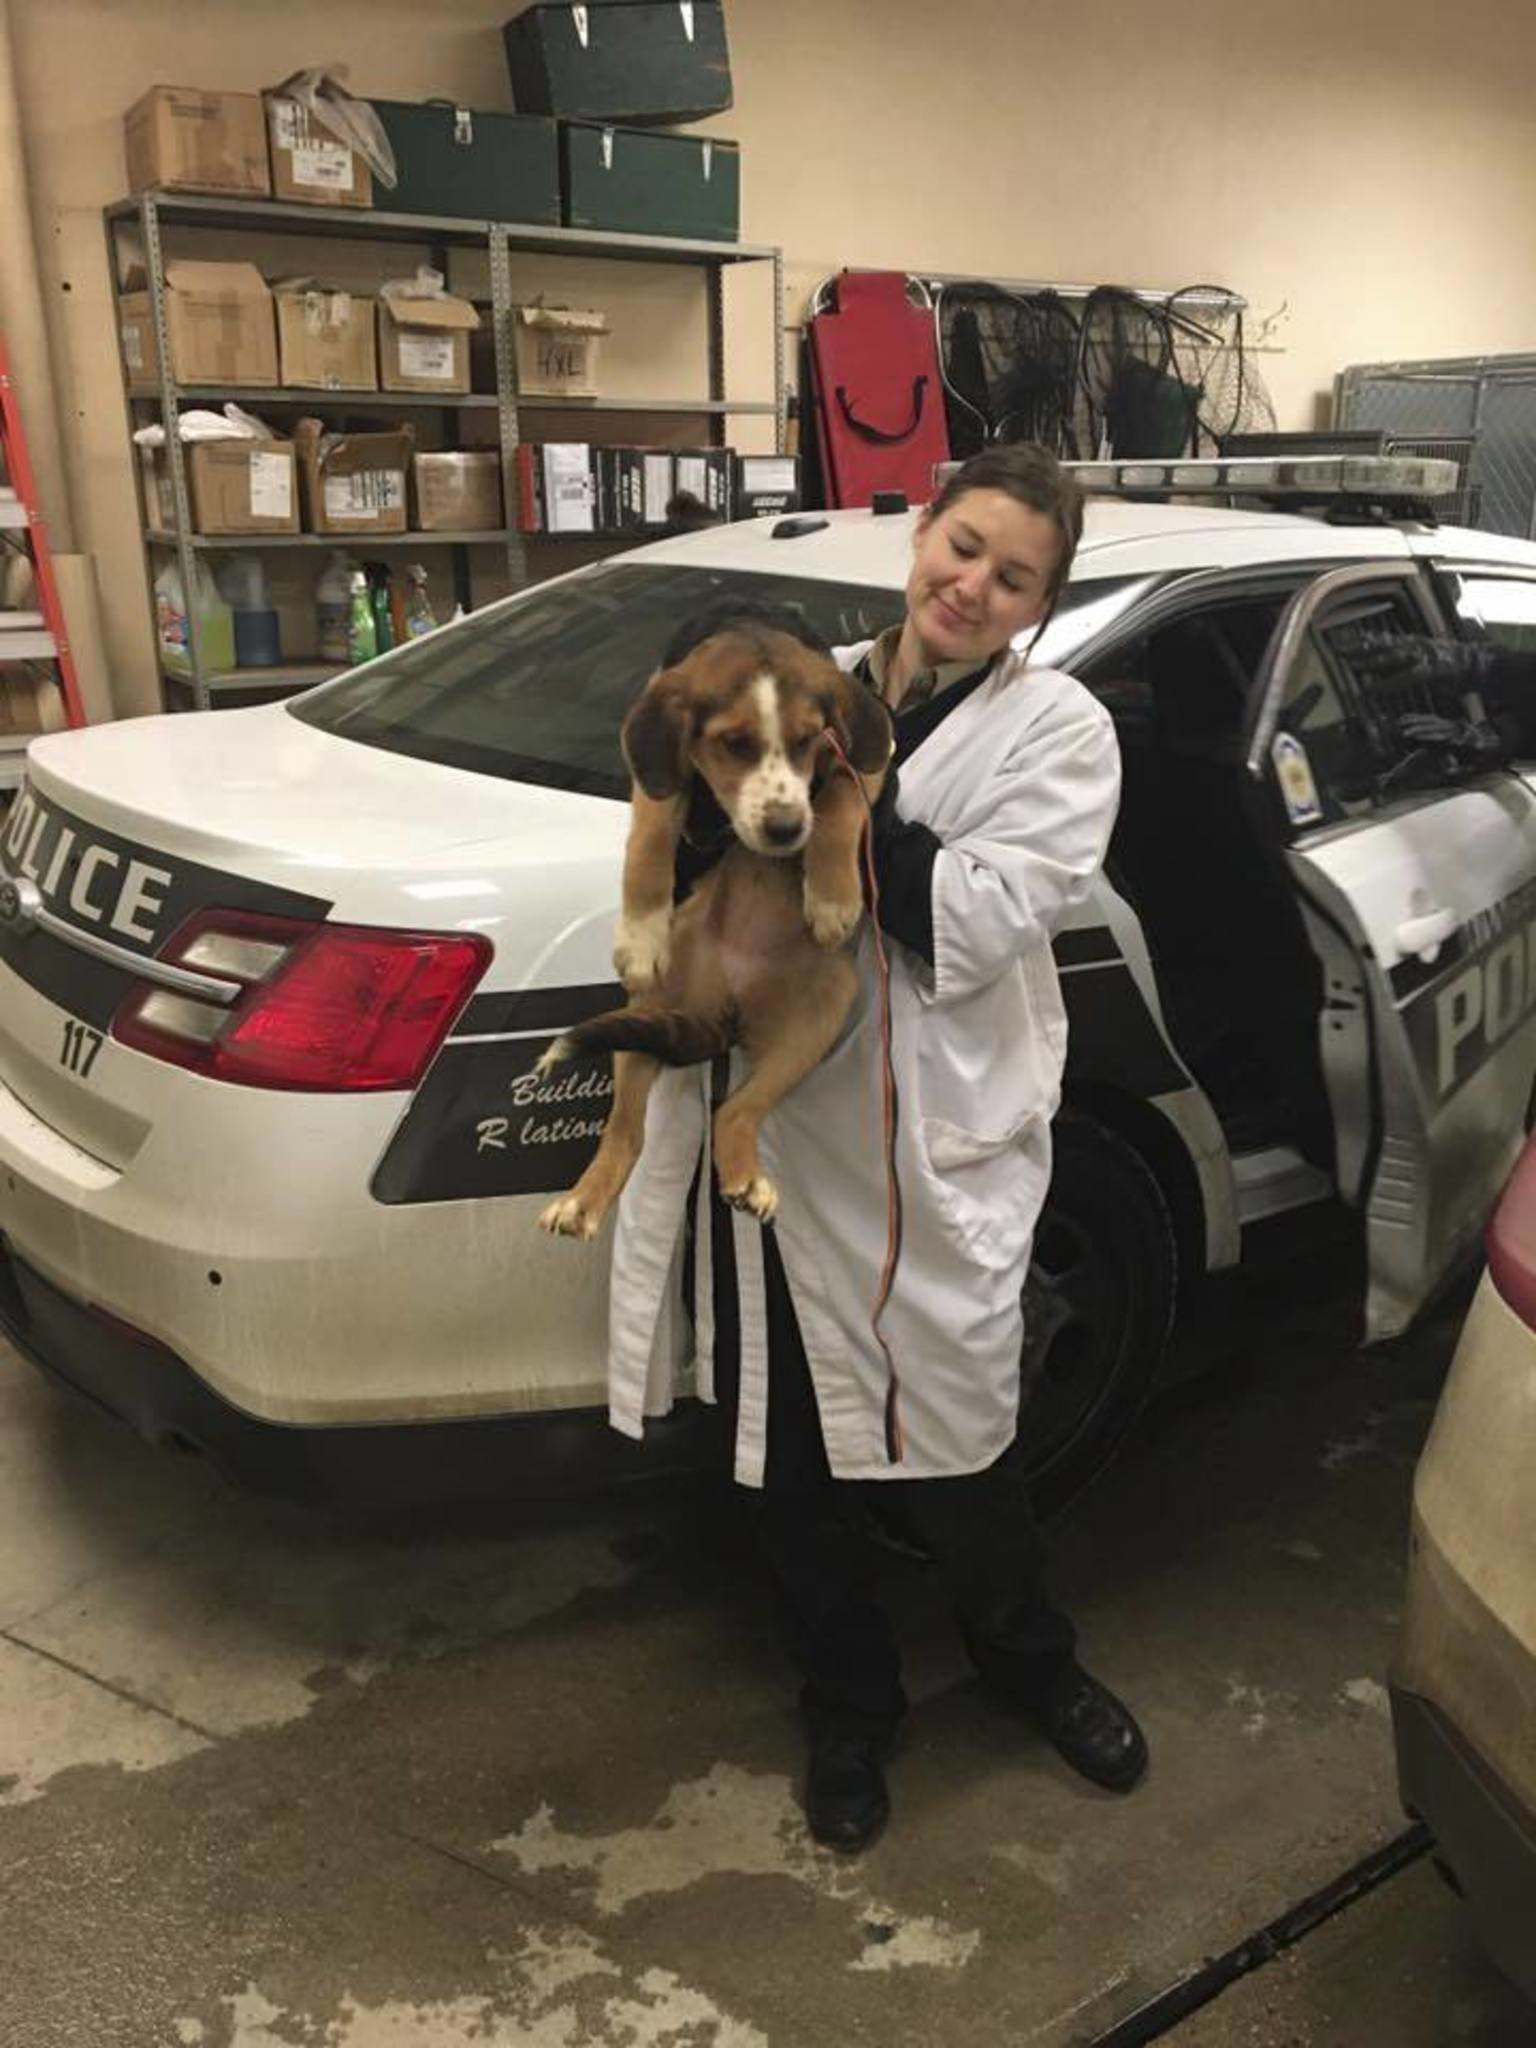 Cruiser cars that transported the dogs had to be decontaminated, a police spokesman said. (Winnipeg Police Service photo)</p>